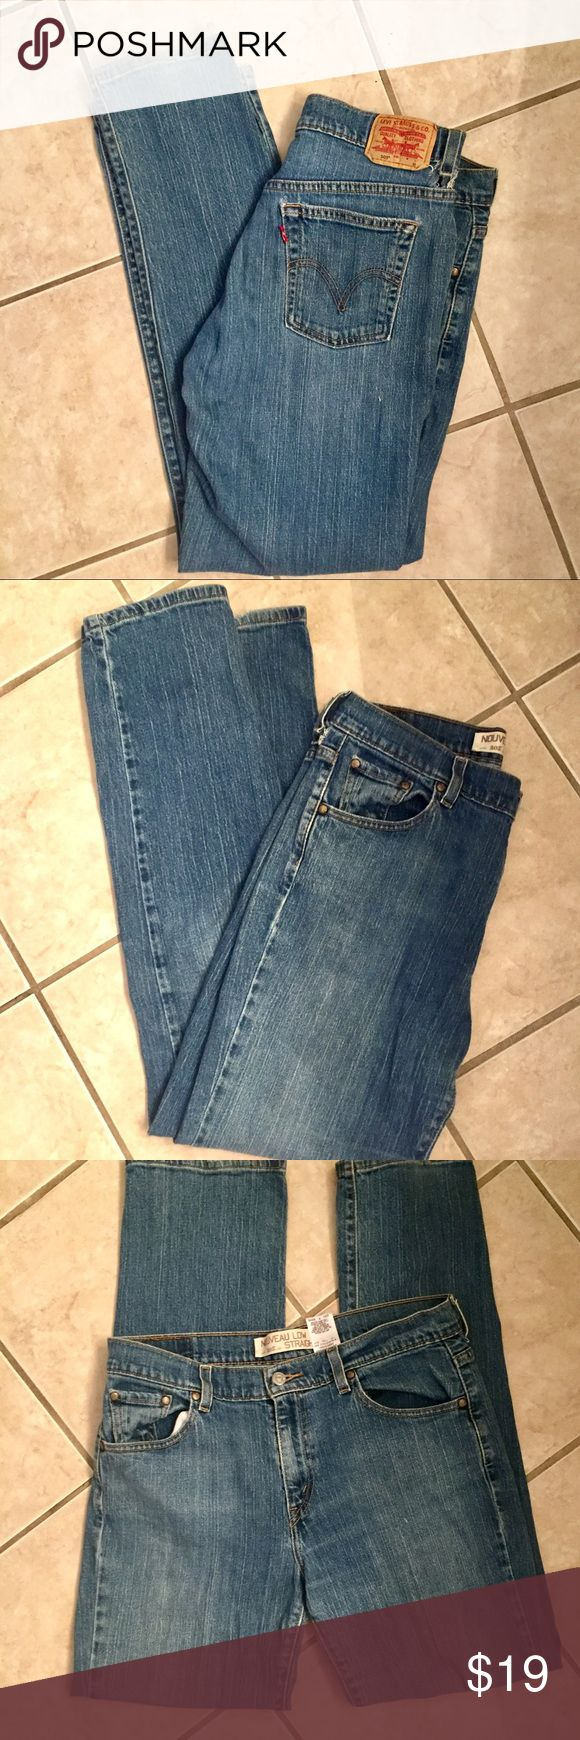 LEVIS 505 NOUVEAU LOW STRAIGHT JEANS Women's straight Nouveau Low-cut Levi 505 Jeans! No flaws! Worn maybe 5 times! Size 12M Levi's Jeans Straight Leg